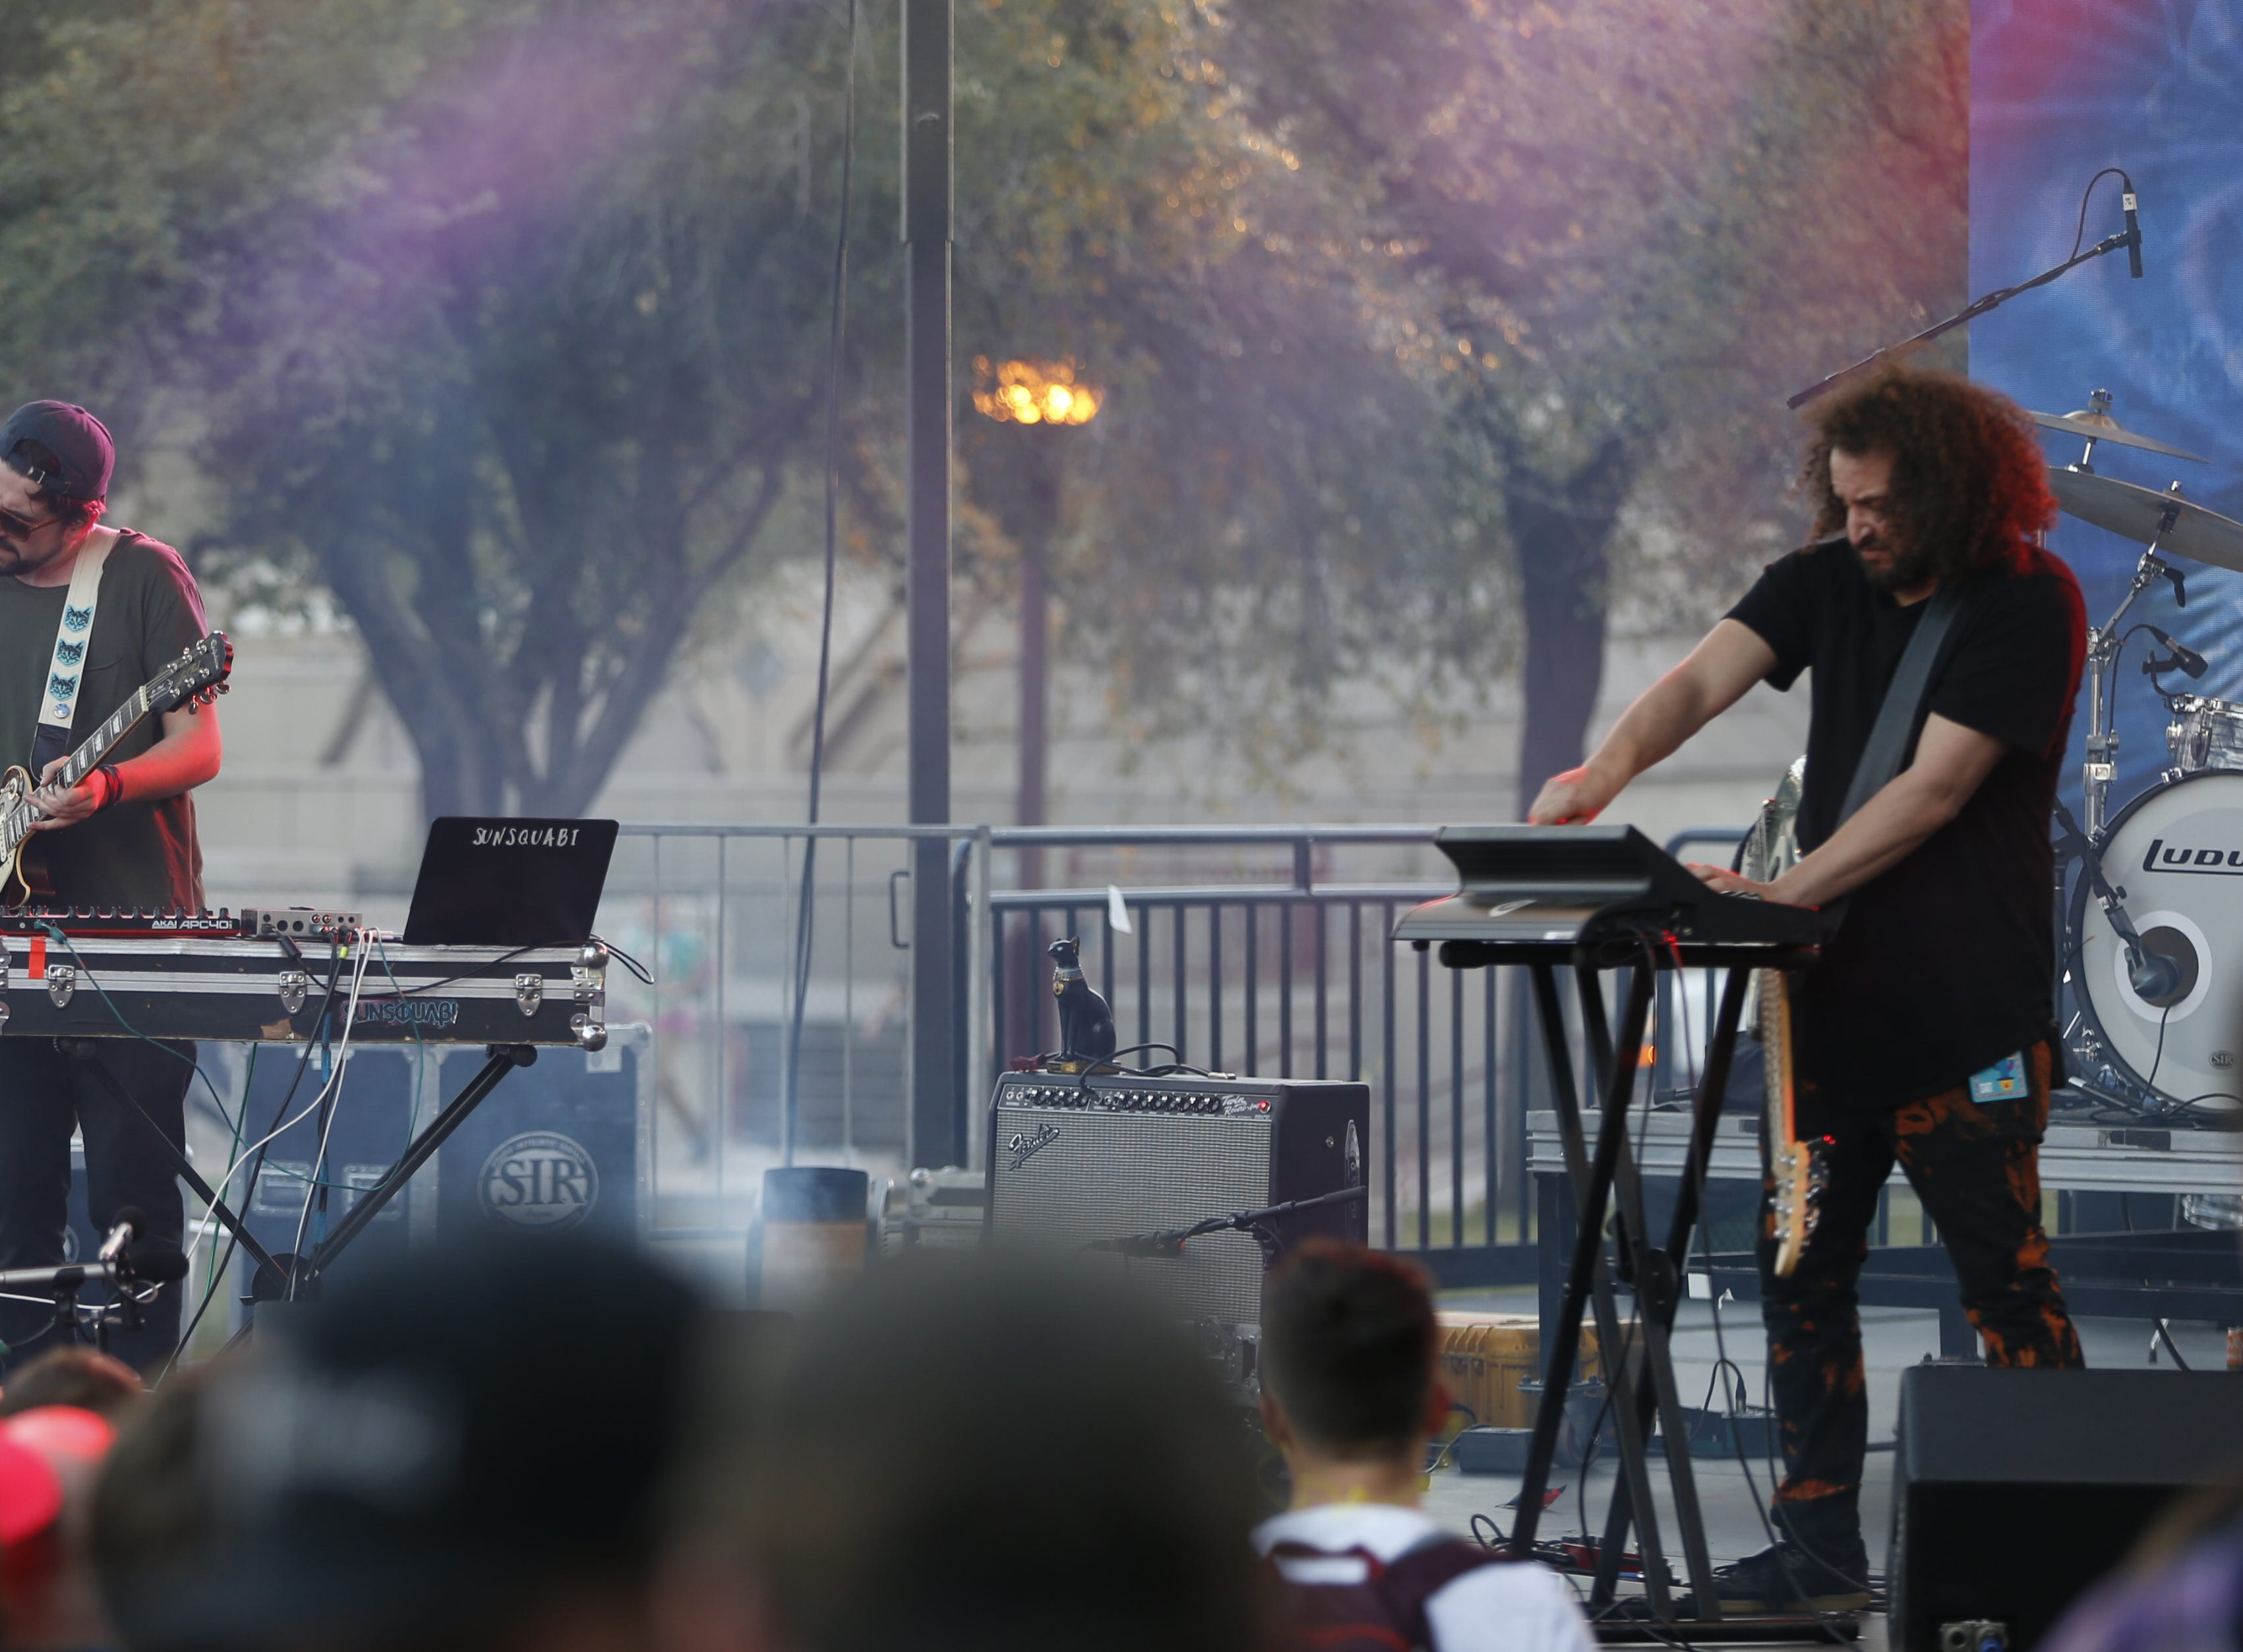 Sunsquabi perform during the McDowell Mountain Music Festival in Phoenix on March 2, 2019.